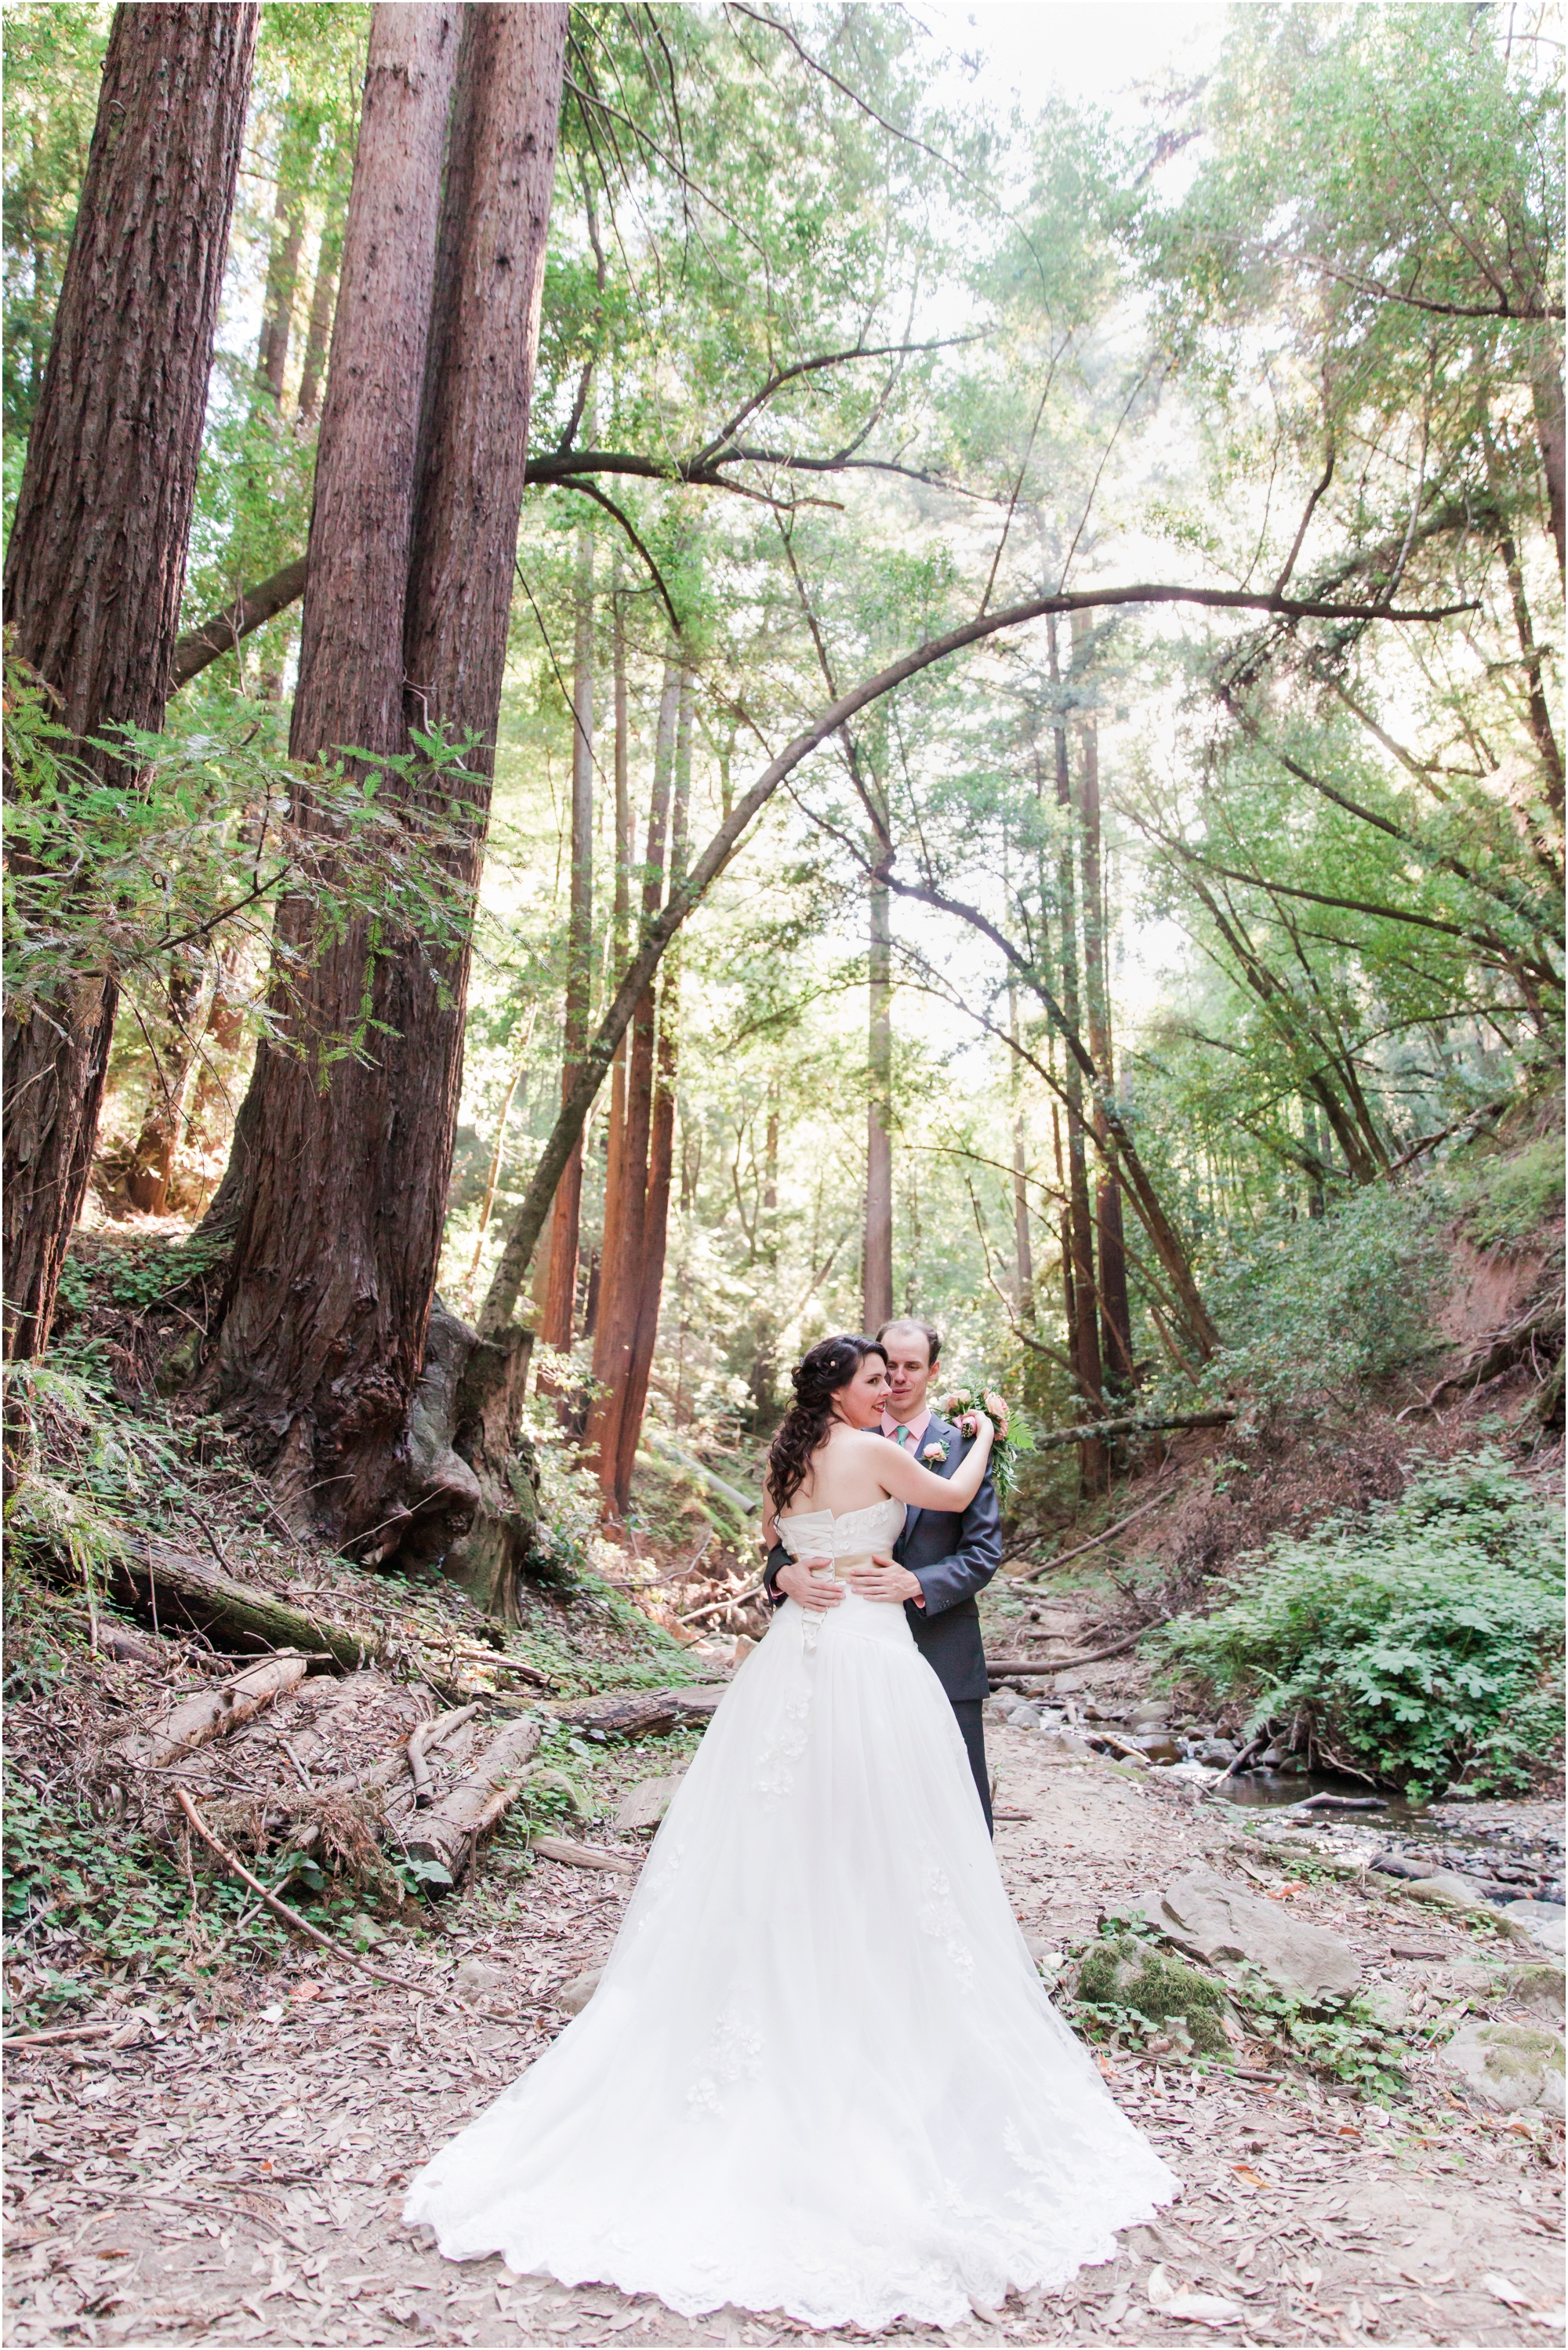 Saratoga Springs wedding pictures by Briana Calderon Photography_1859.jpg